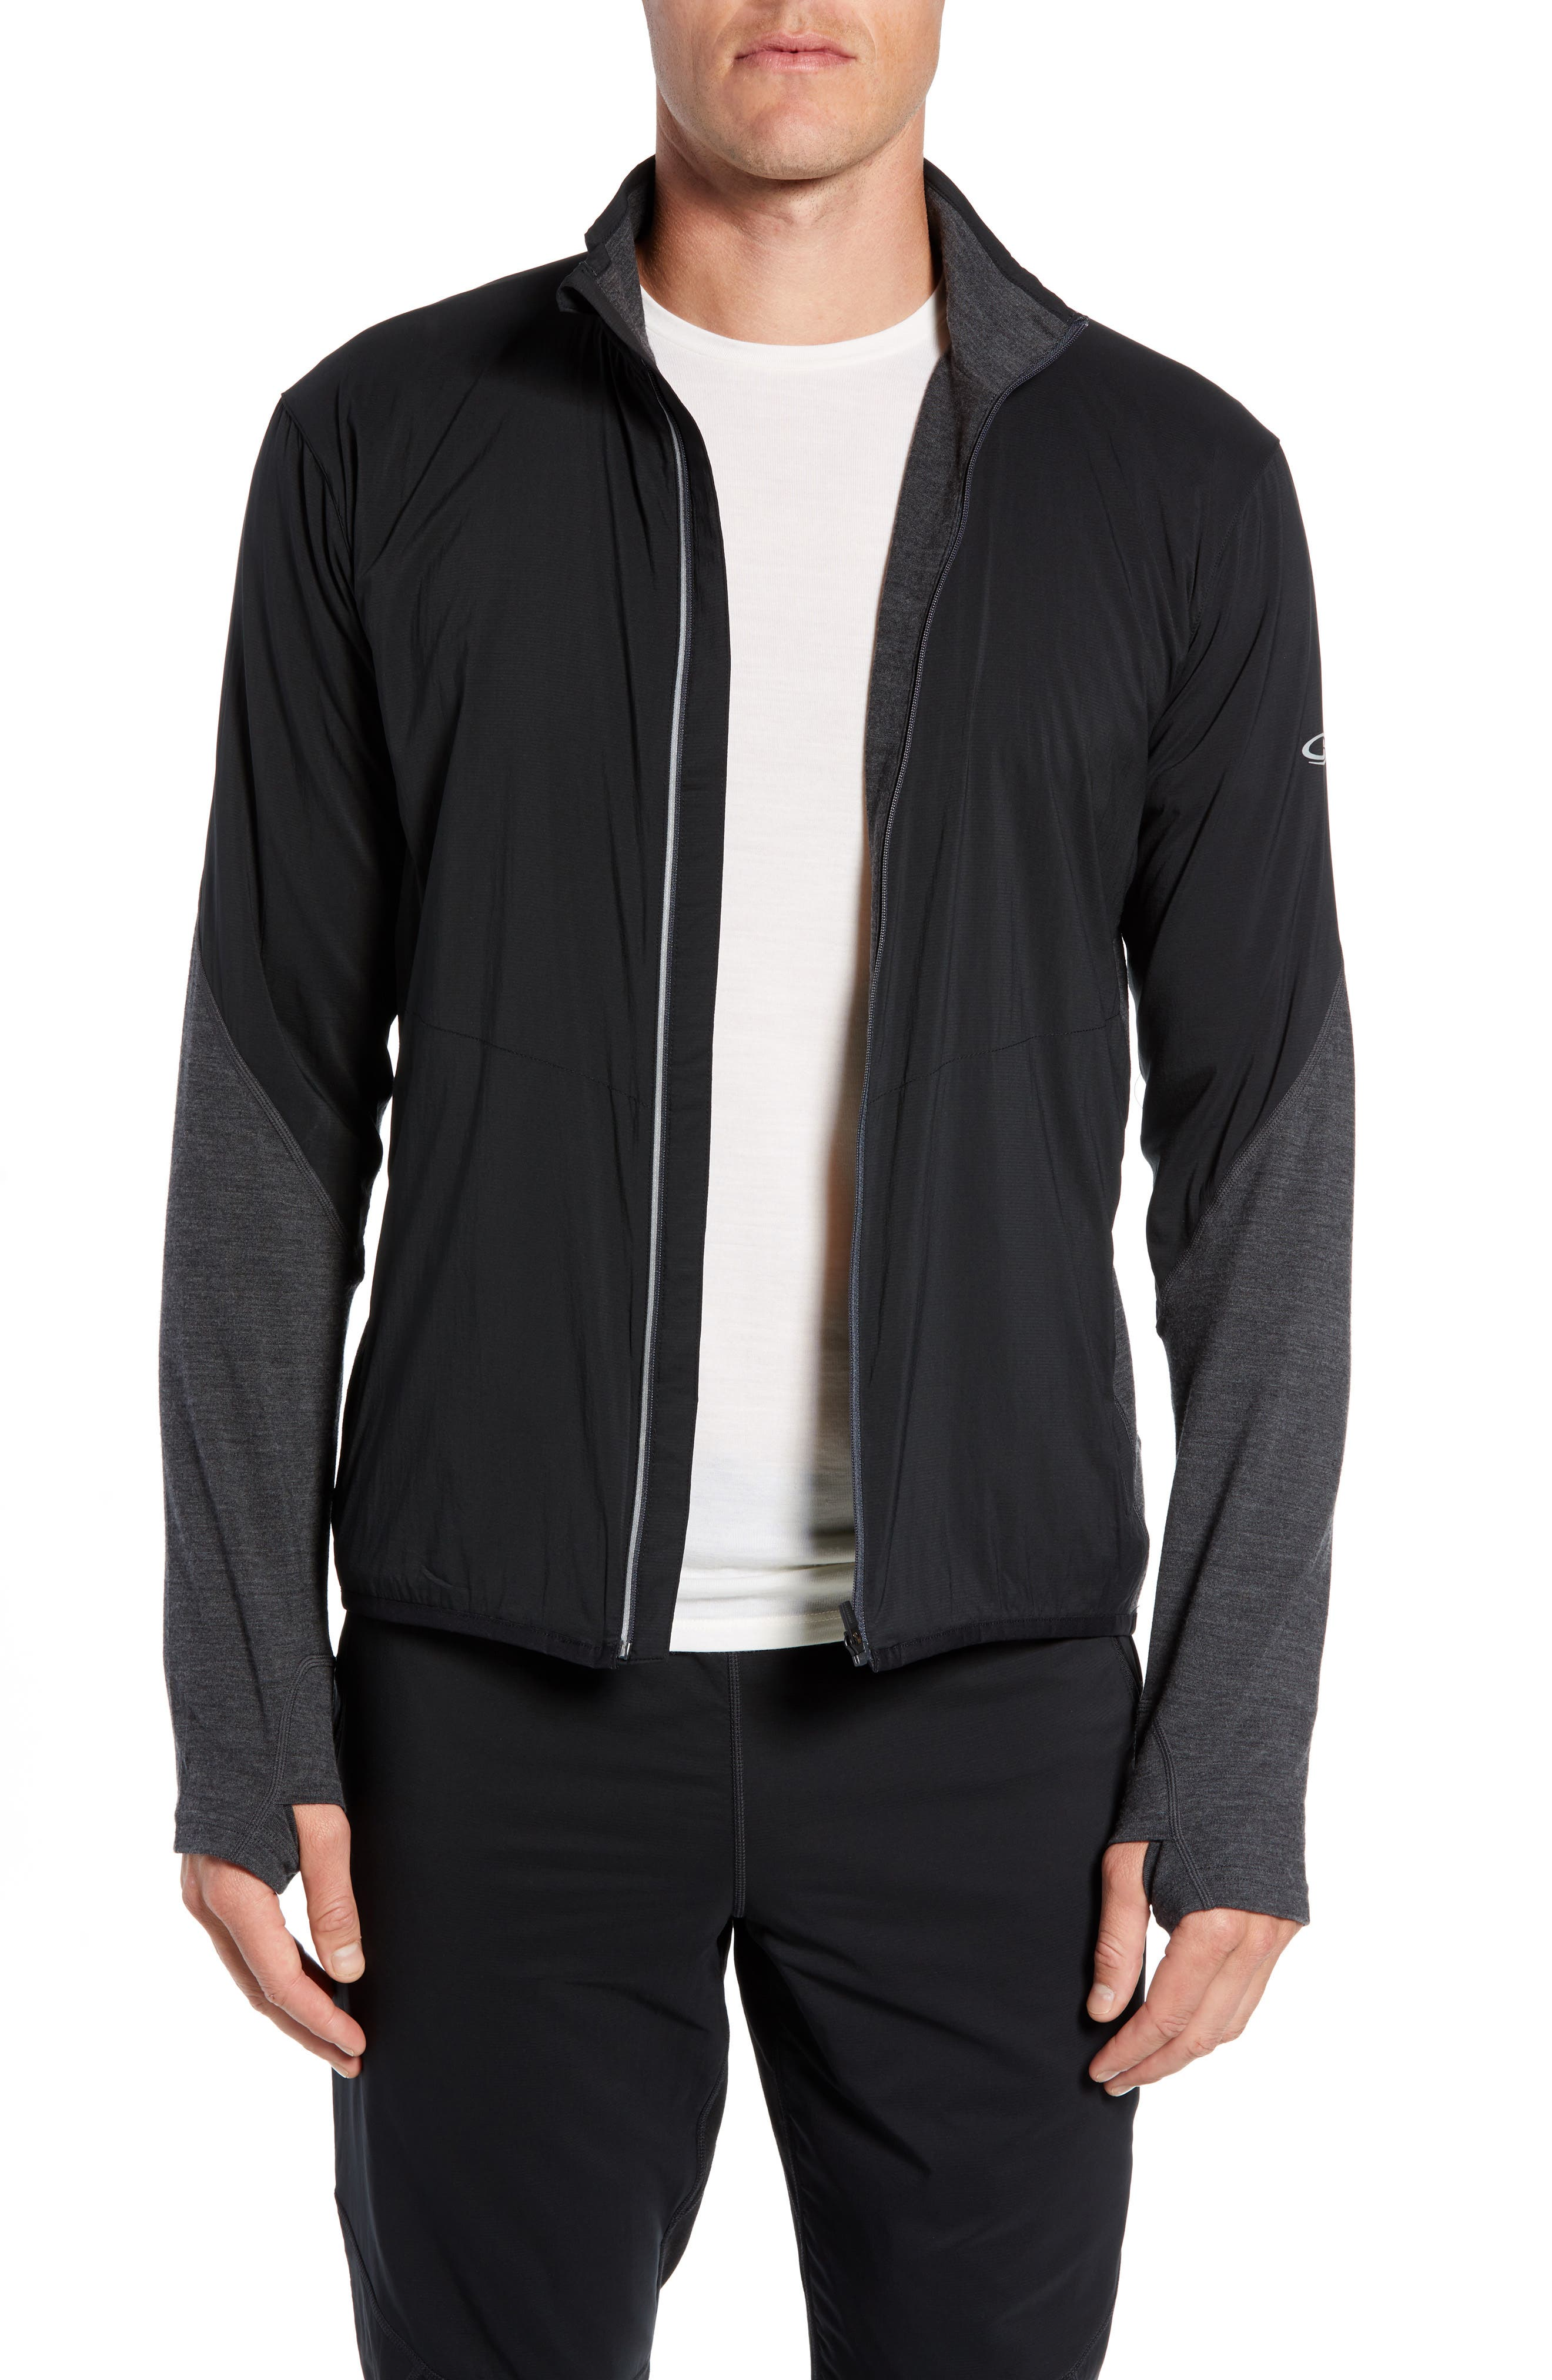 Tech Trainer Hybrid Jacket,                         Main,                         color, BLACK